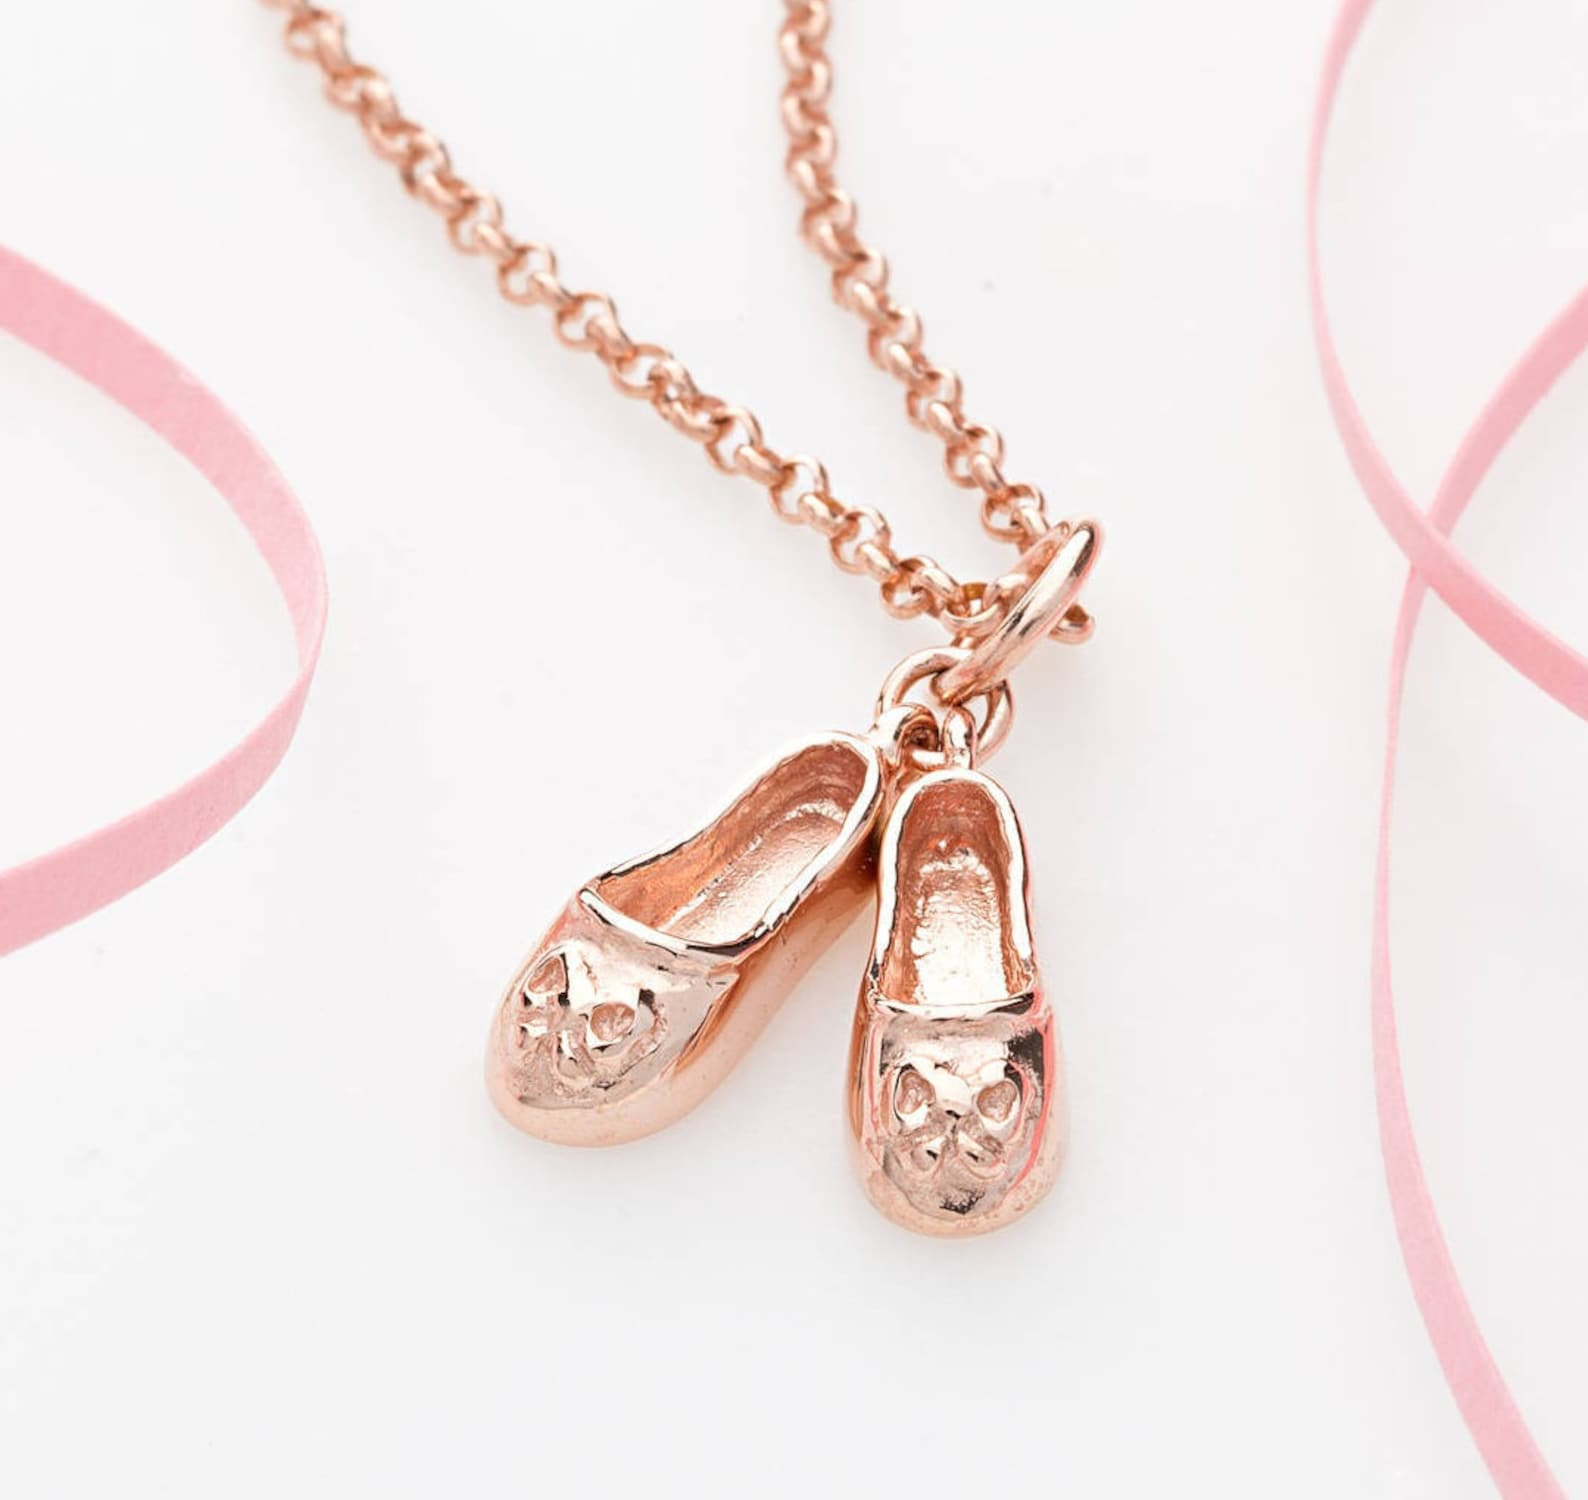 rose gold ballet shoes charm necklace - personalised ballet shoes pendant - ballet dancer gift - ballerina gift - pink ballet sh